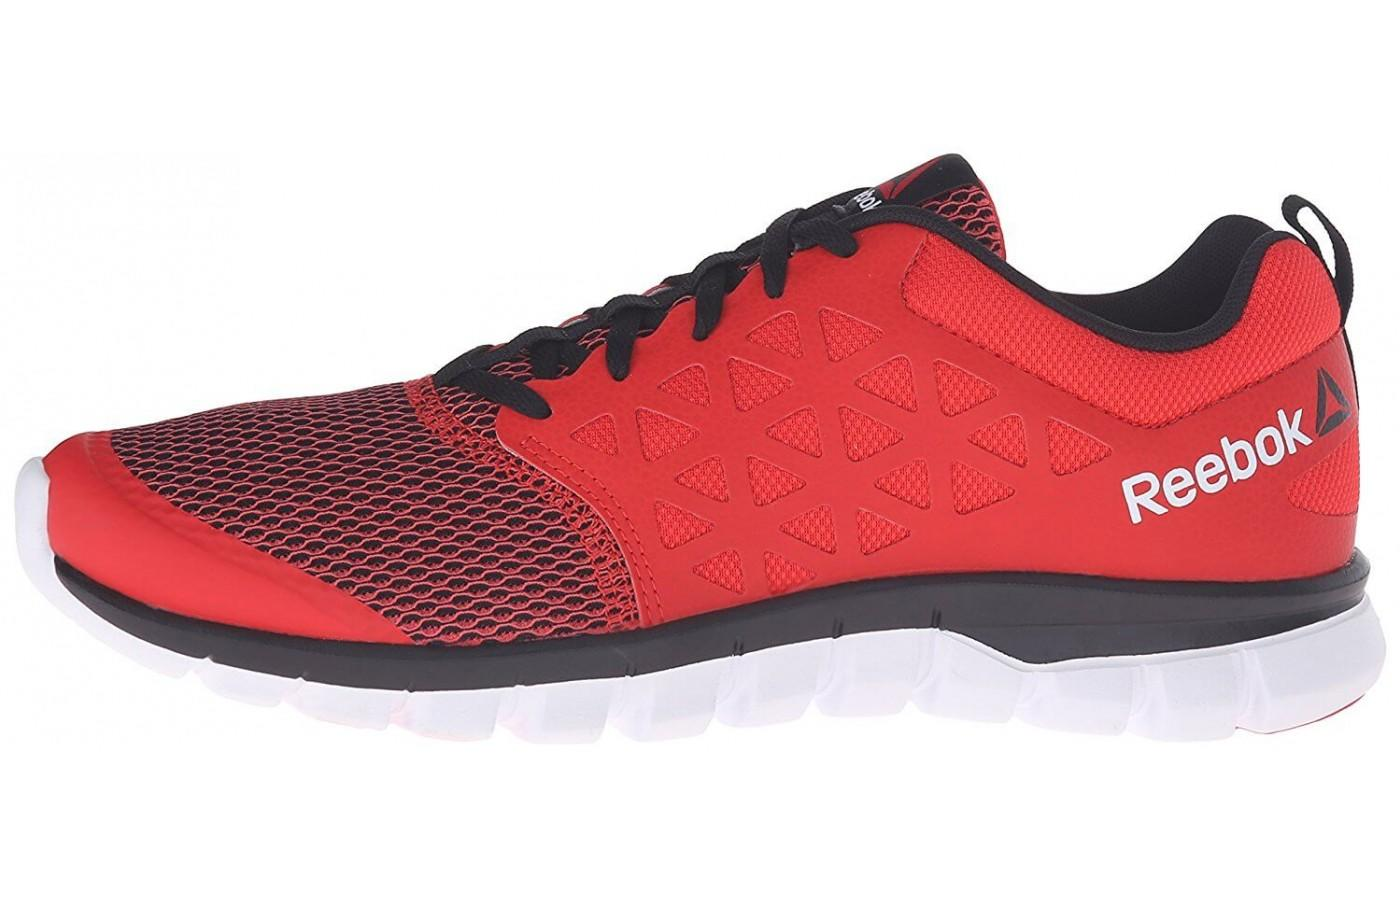 8cd89d15e5d ... the Reebok Sublite XT Cushion 2.0 is a low-cut running shoe ...